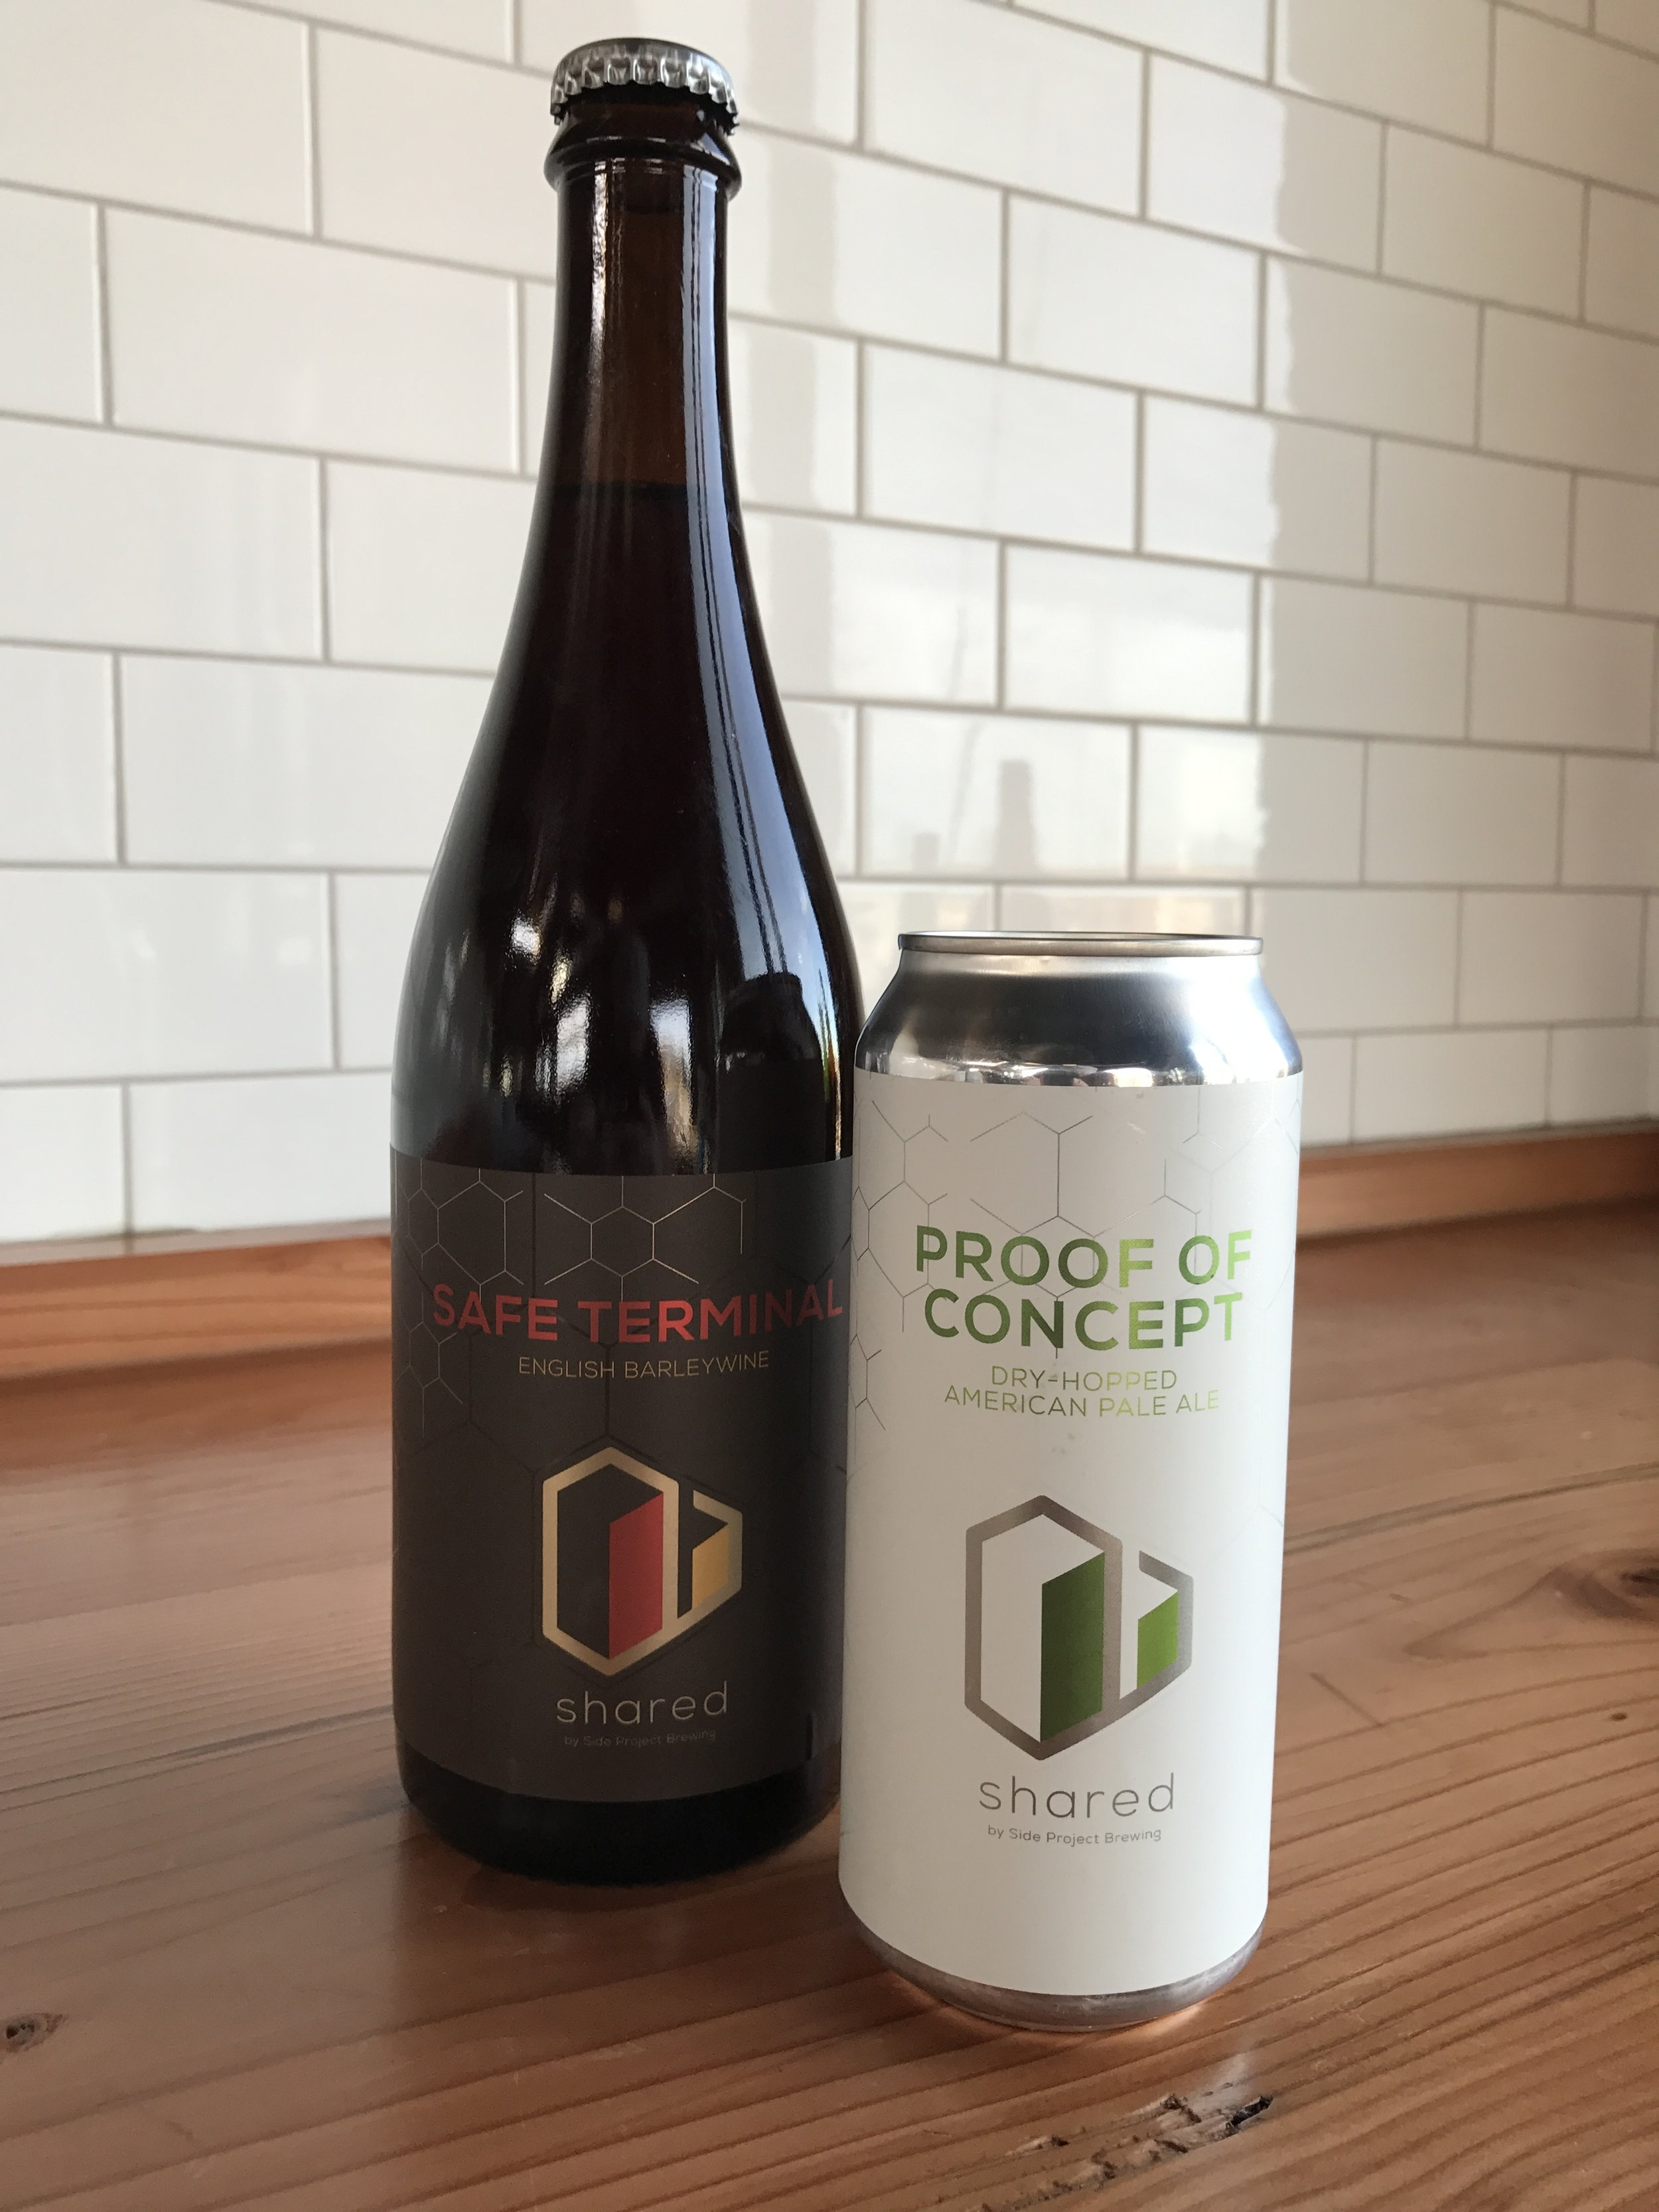 Shared Safe Terminal and Shared Proof of Concept #1 will be available starting at noon Saturday, Feb. 18th at Side Project Brewing (7458 Manchester Rd in Maplewood).